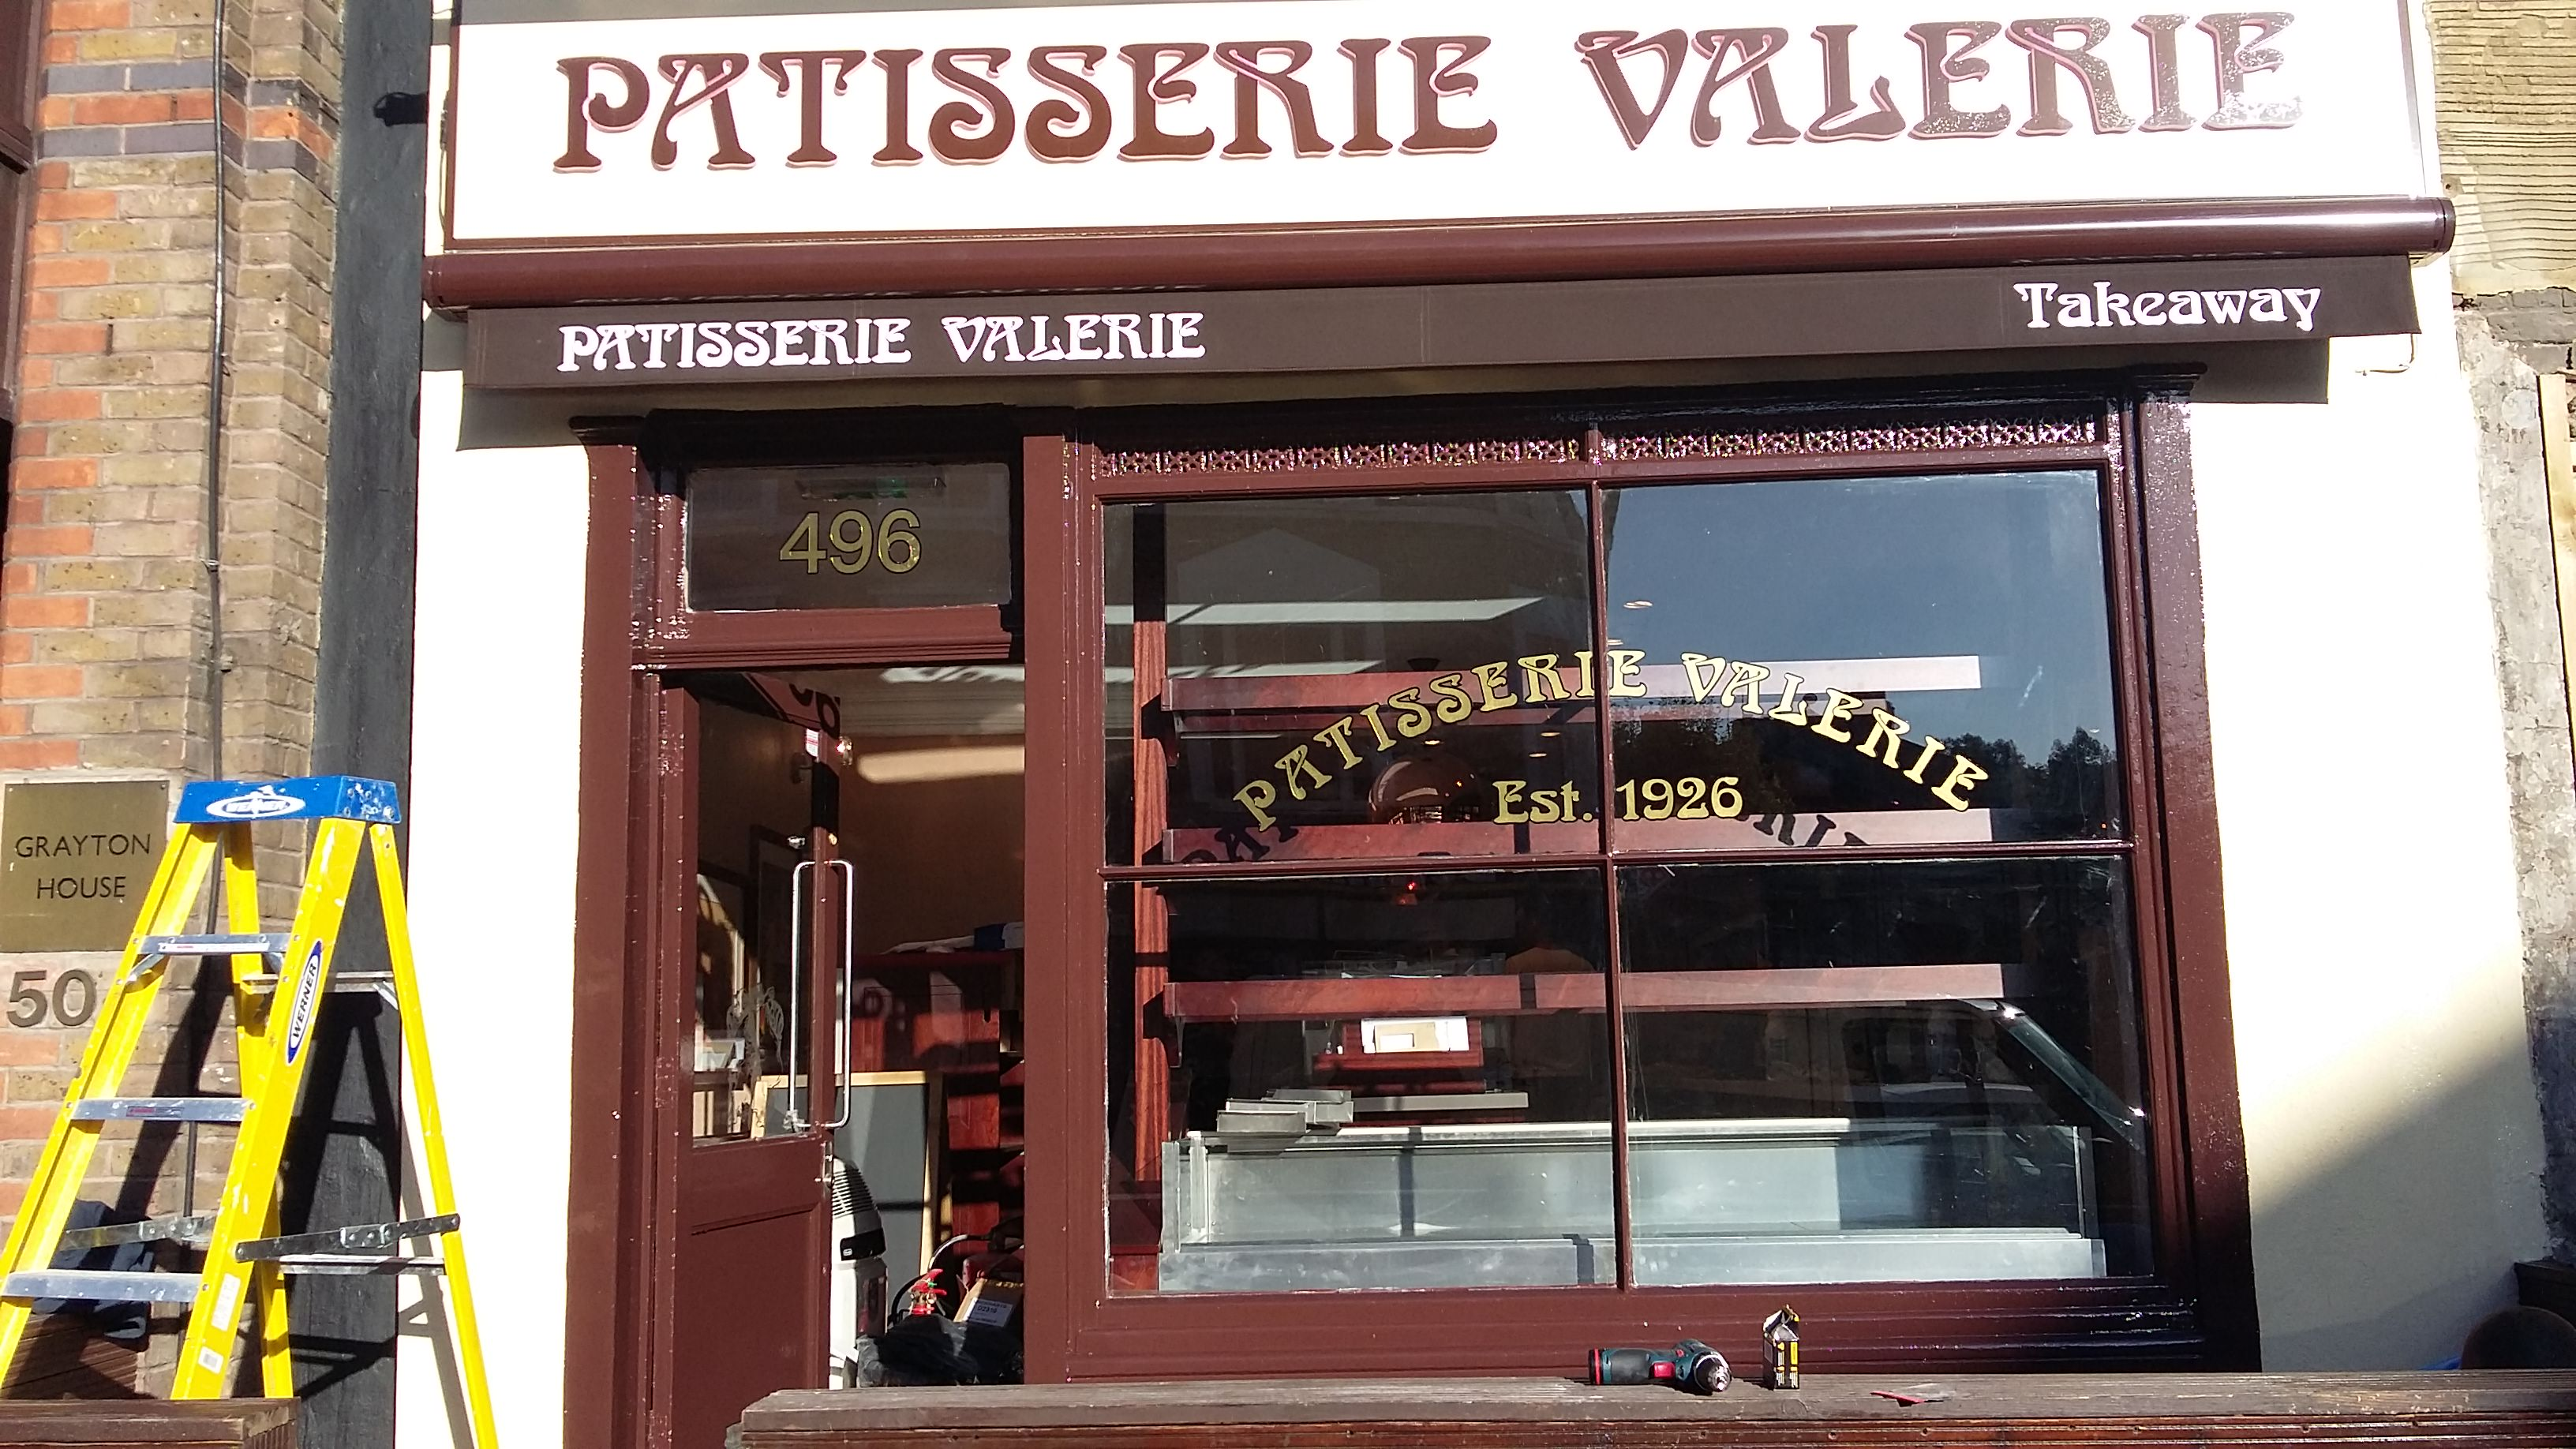 Shop Fitter Patisserie Valerie88